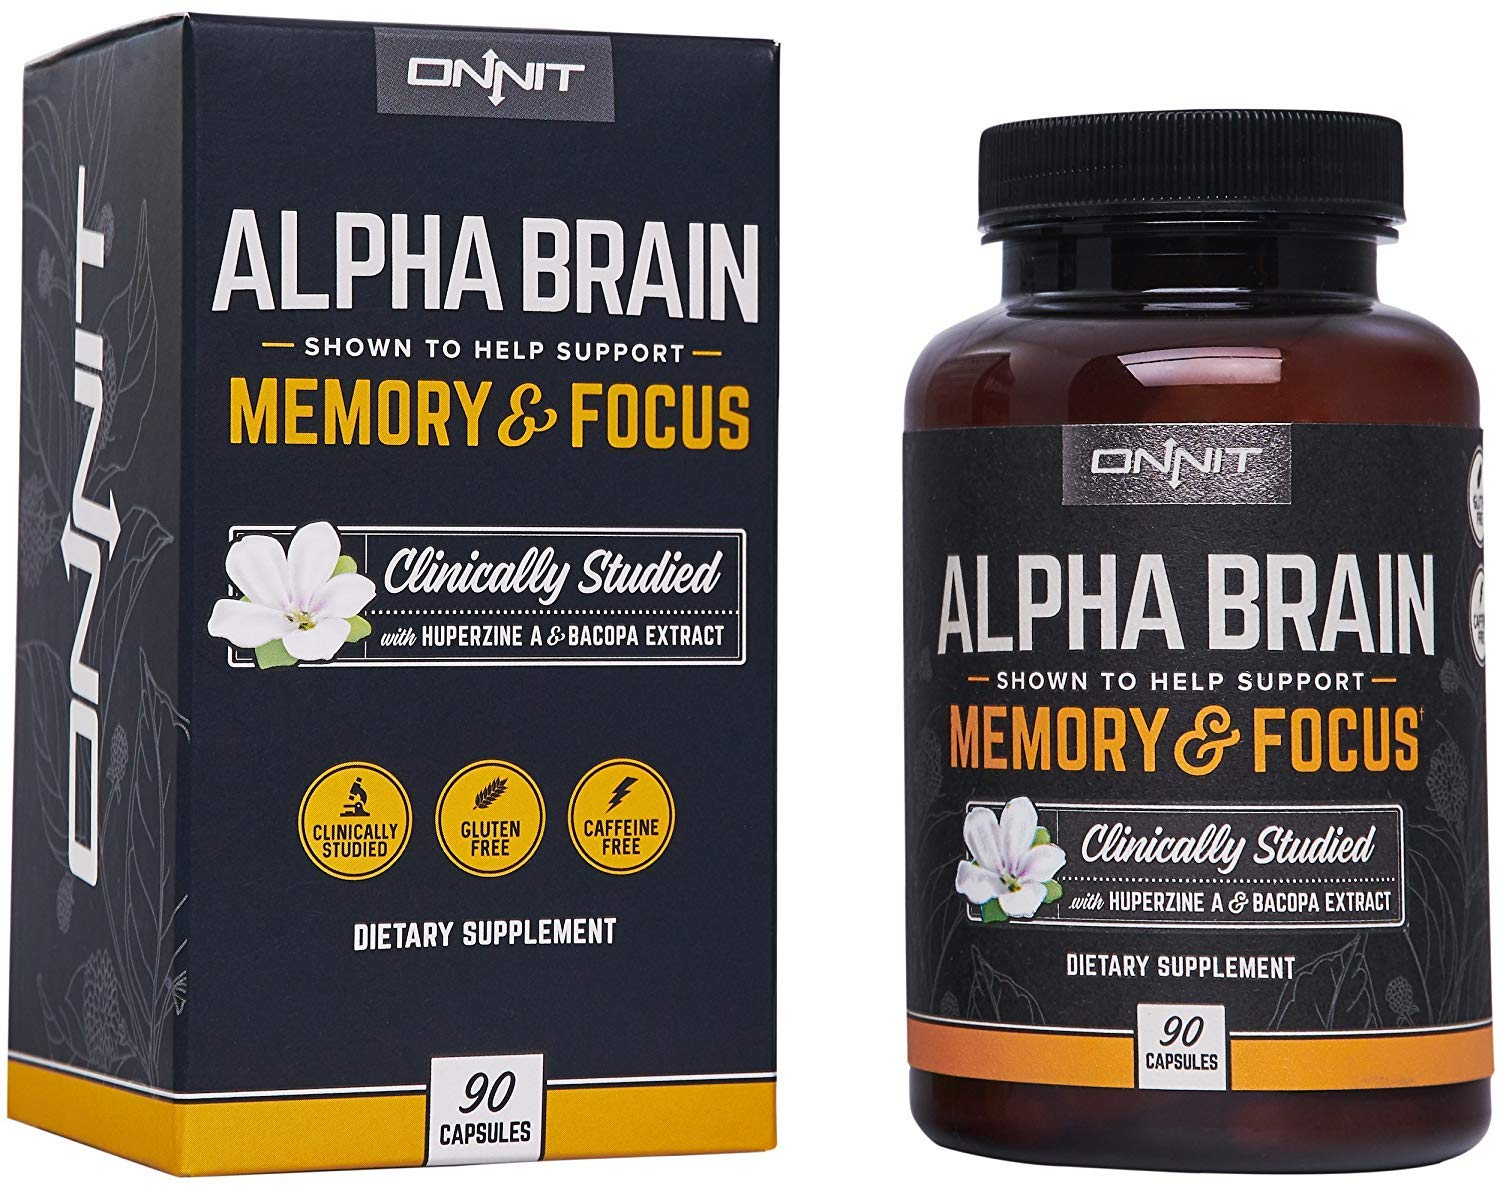 f9e857e8 Amazon.com: Onnit Alpha Brain (90ct): Nootropic Brain Booster Supplement  For Memory, Focus, and Mental Clarity | With Bacopa, AC11, Huperzine A,  L-Tyrosine, ...